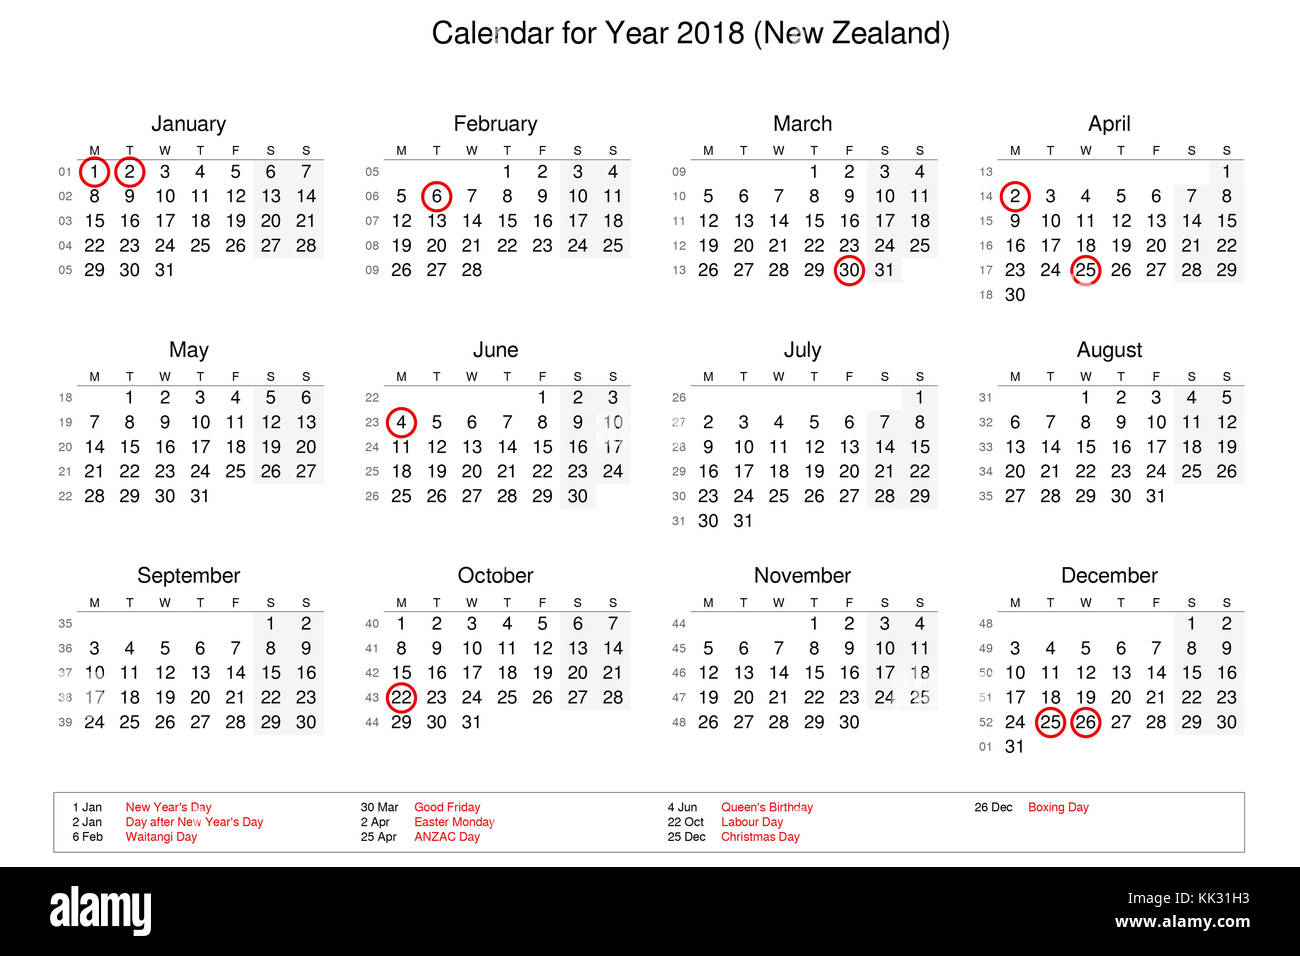 Calendar Of Year 2018 With Public Holidays And Bank For New Zealand